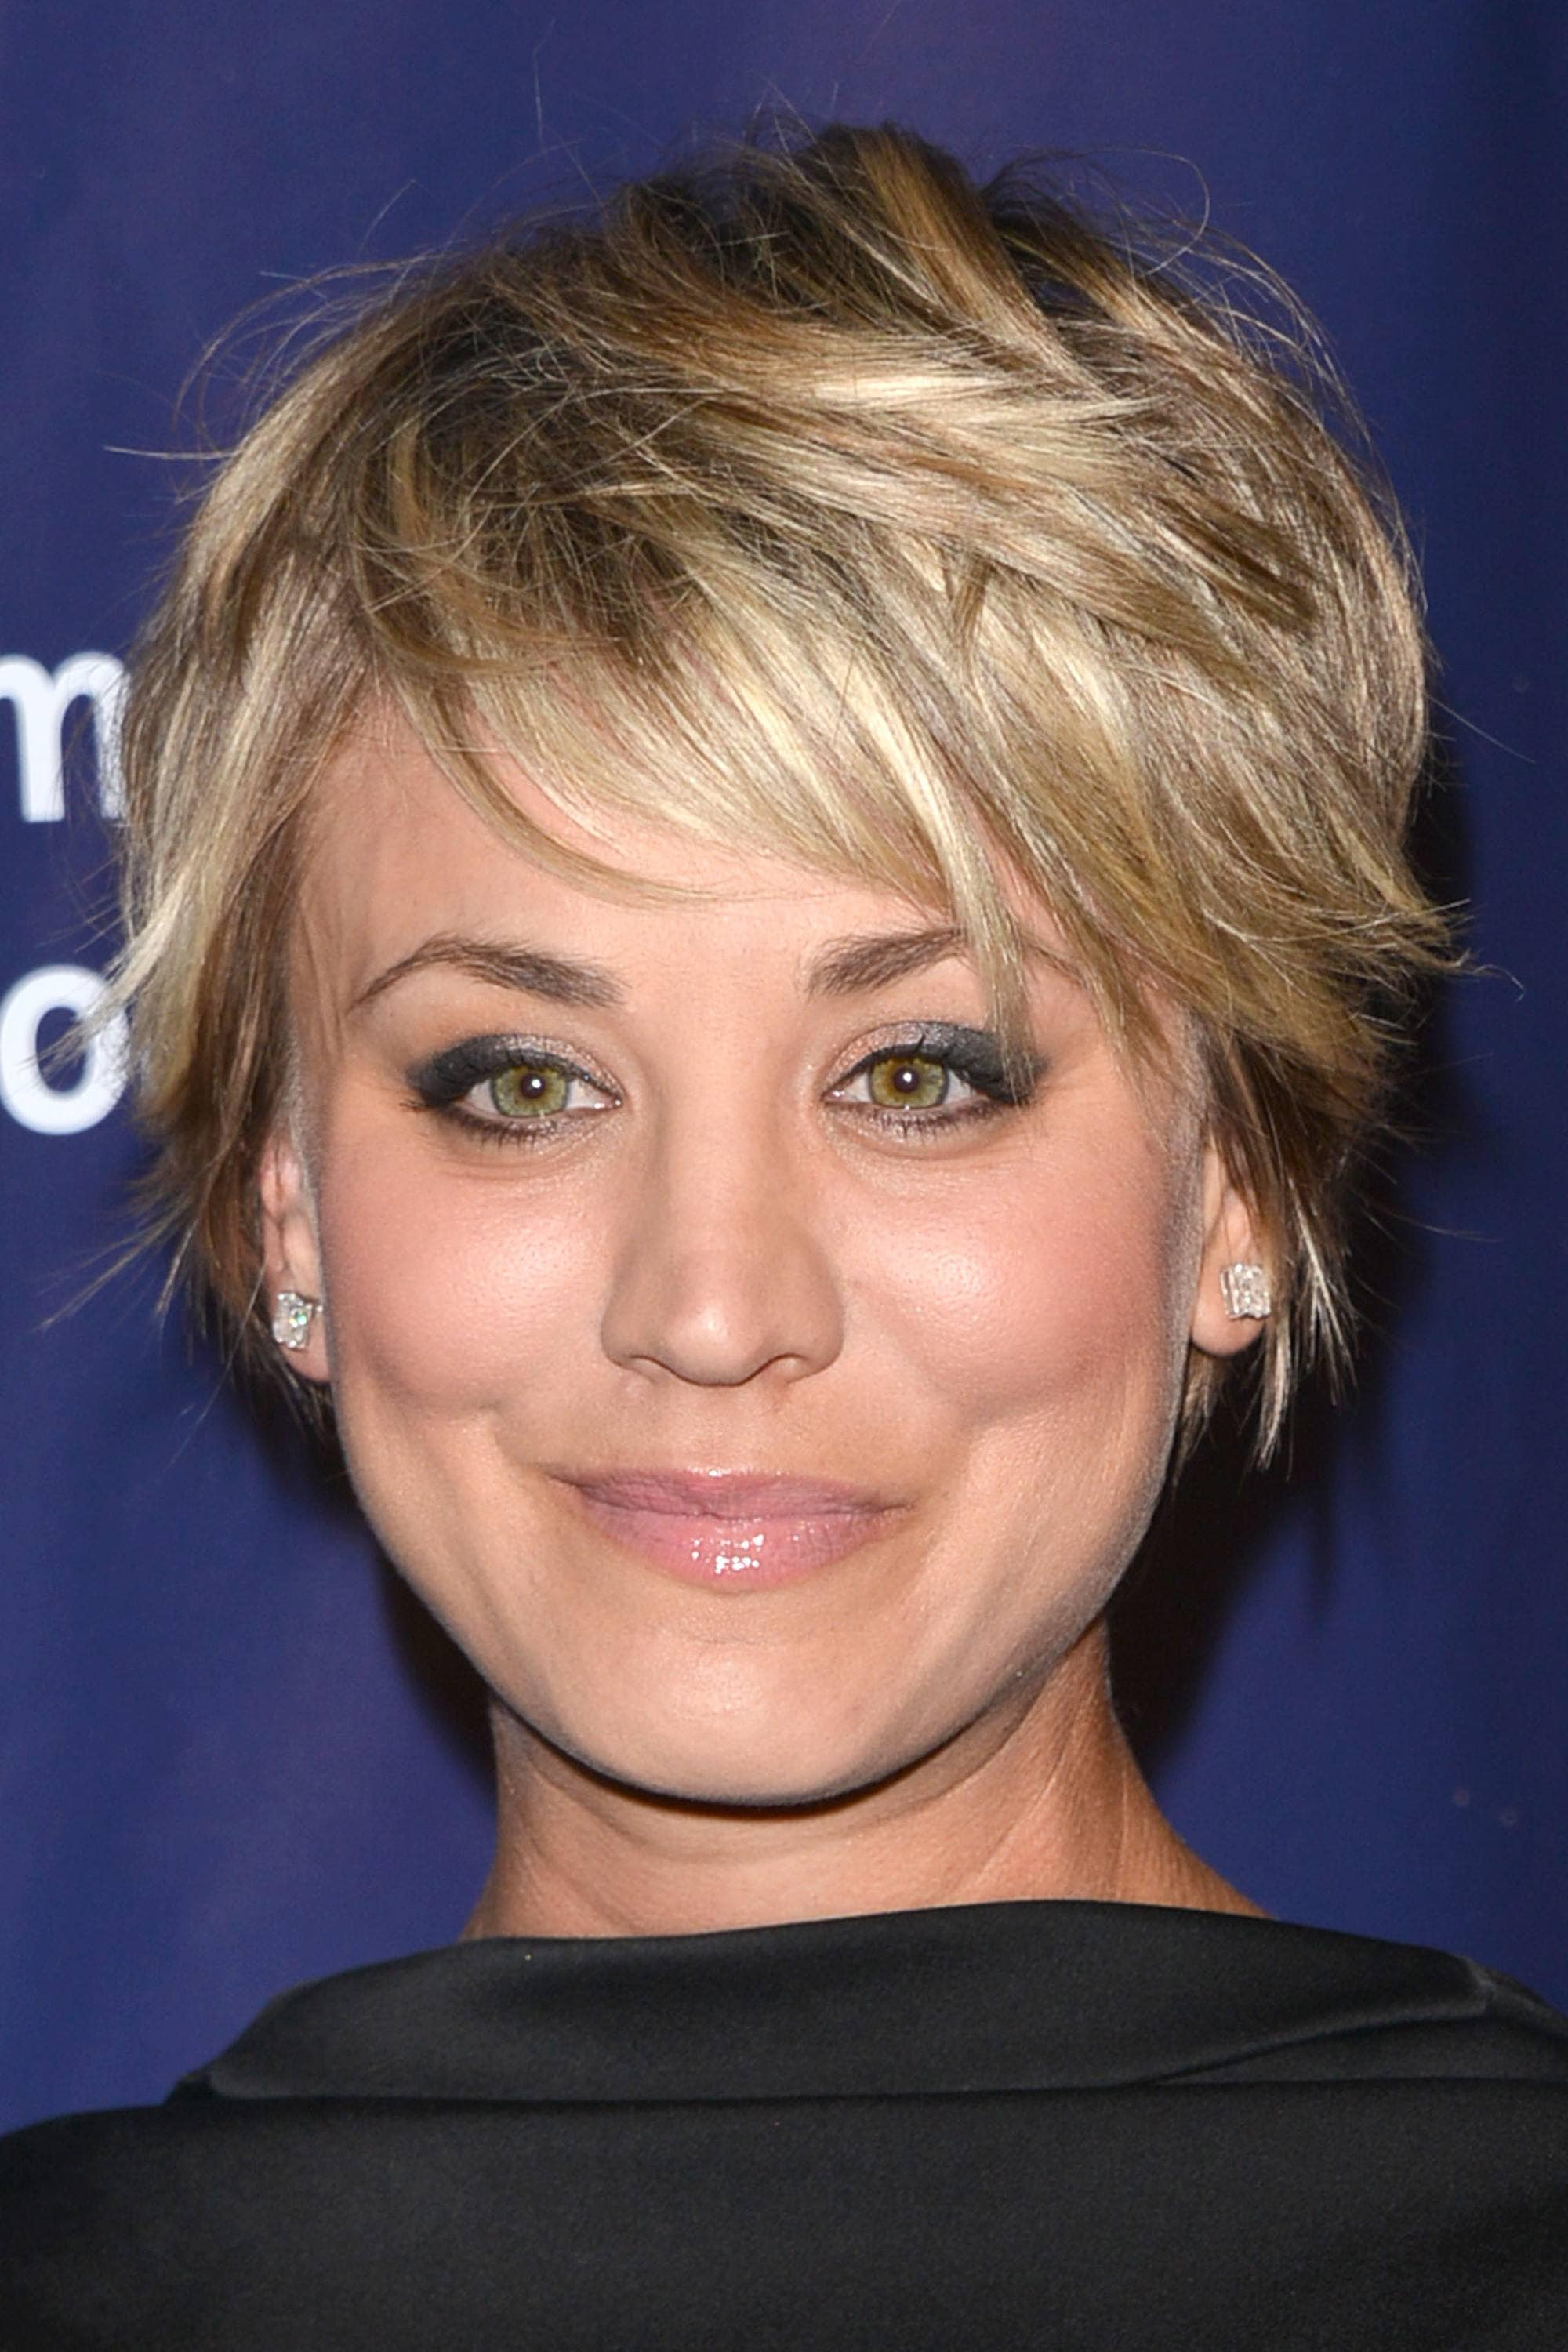 Kaley Cuoco Reveals Dreamy Sherbet Hue And We Are Obsessed